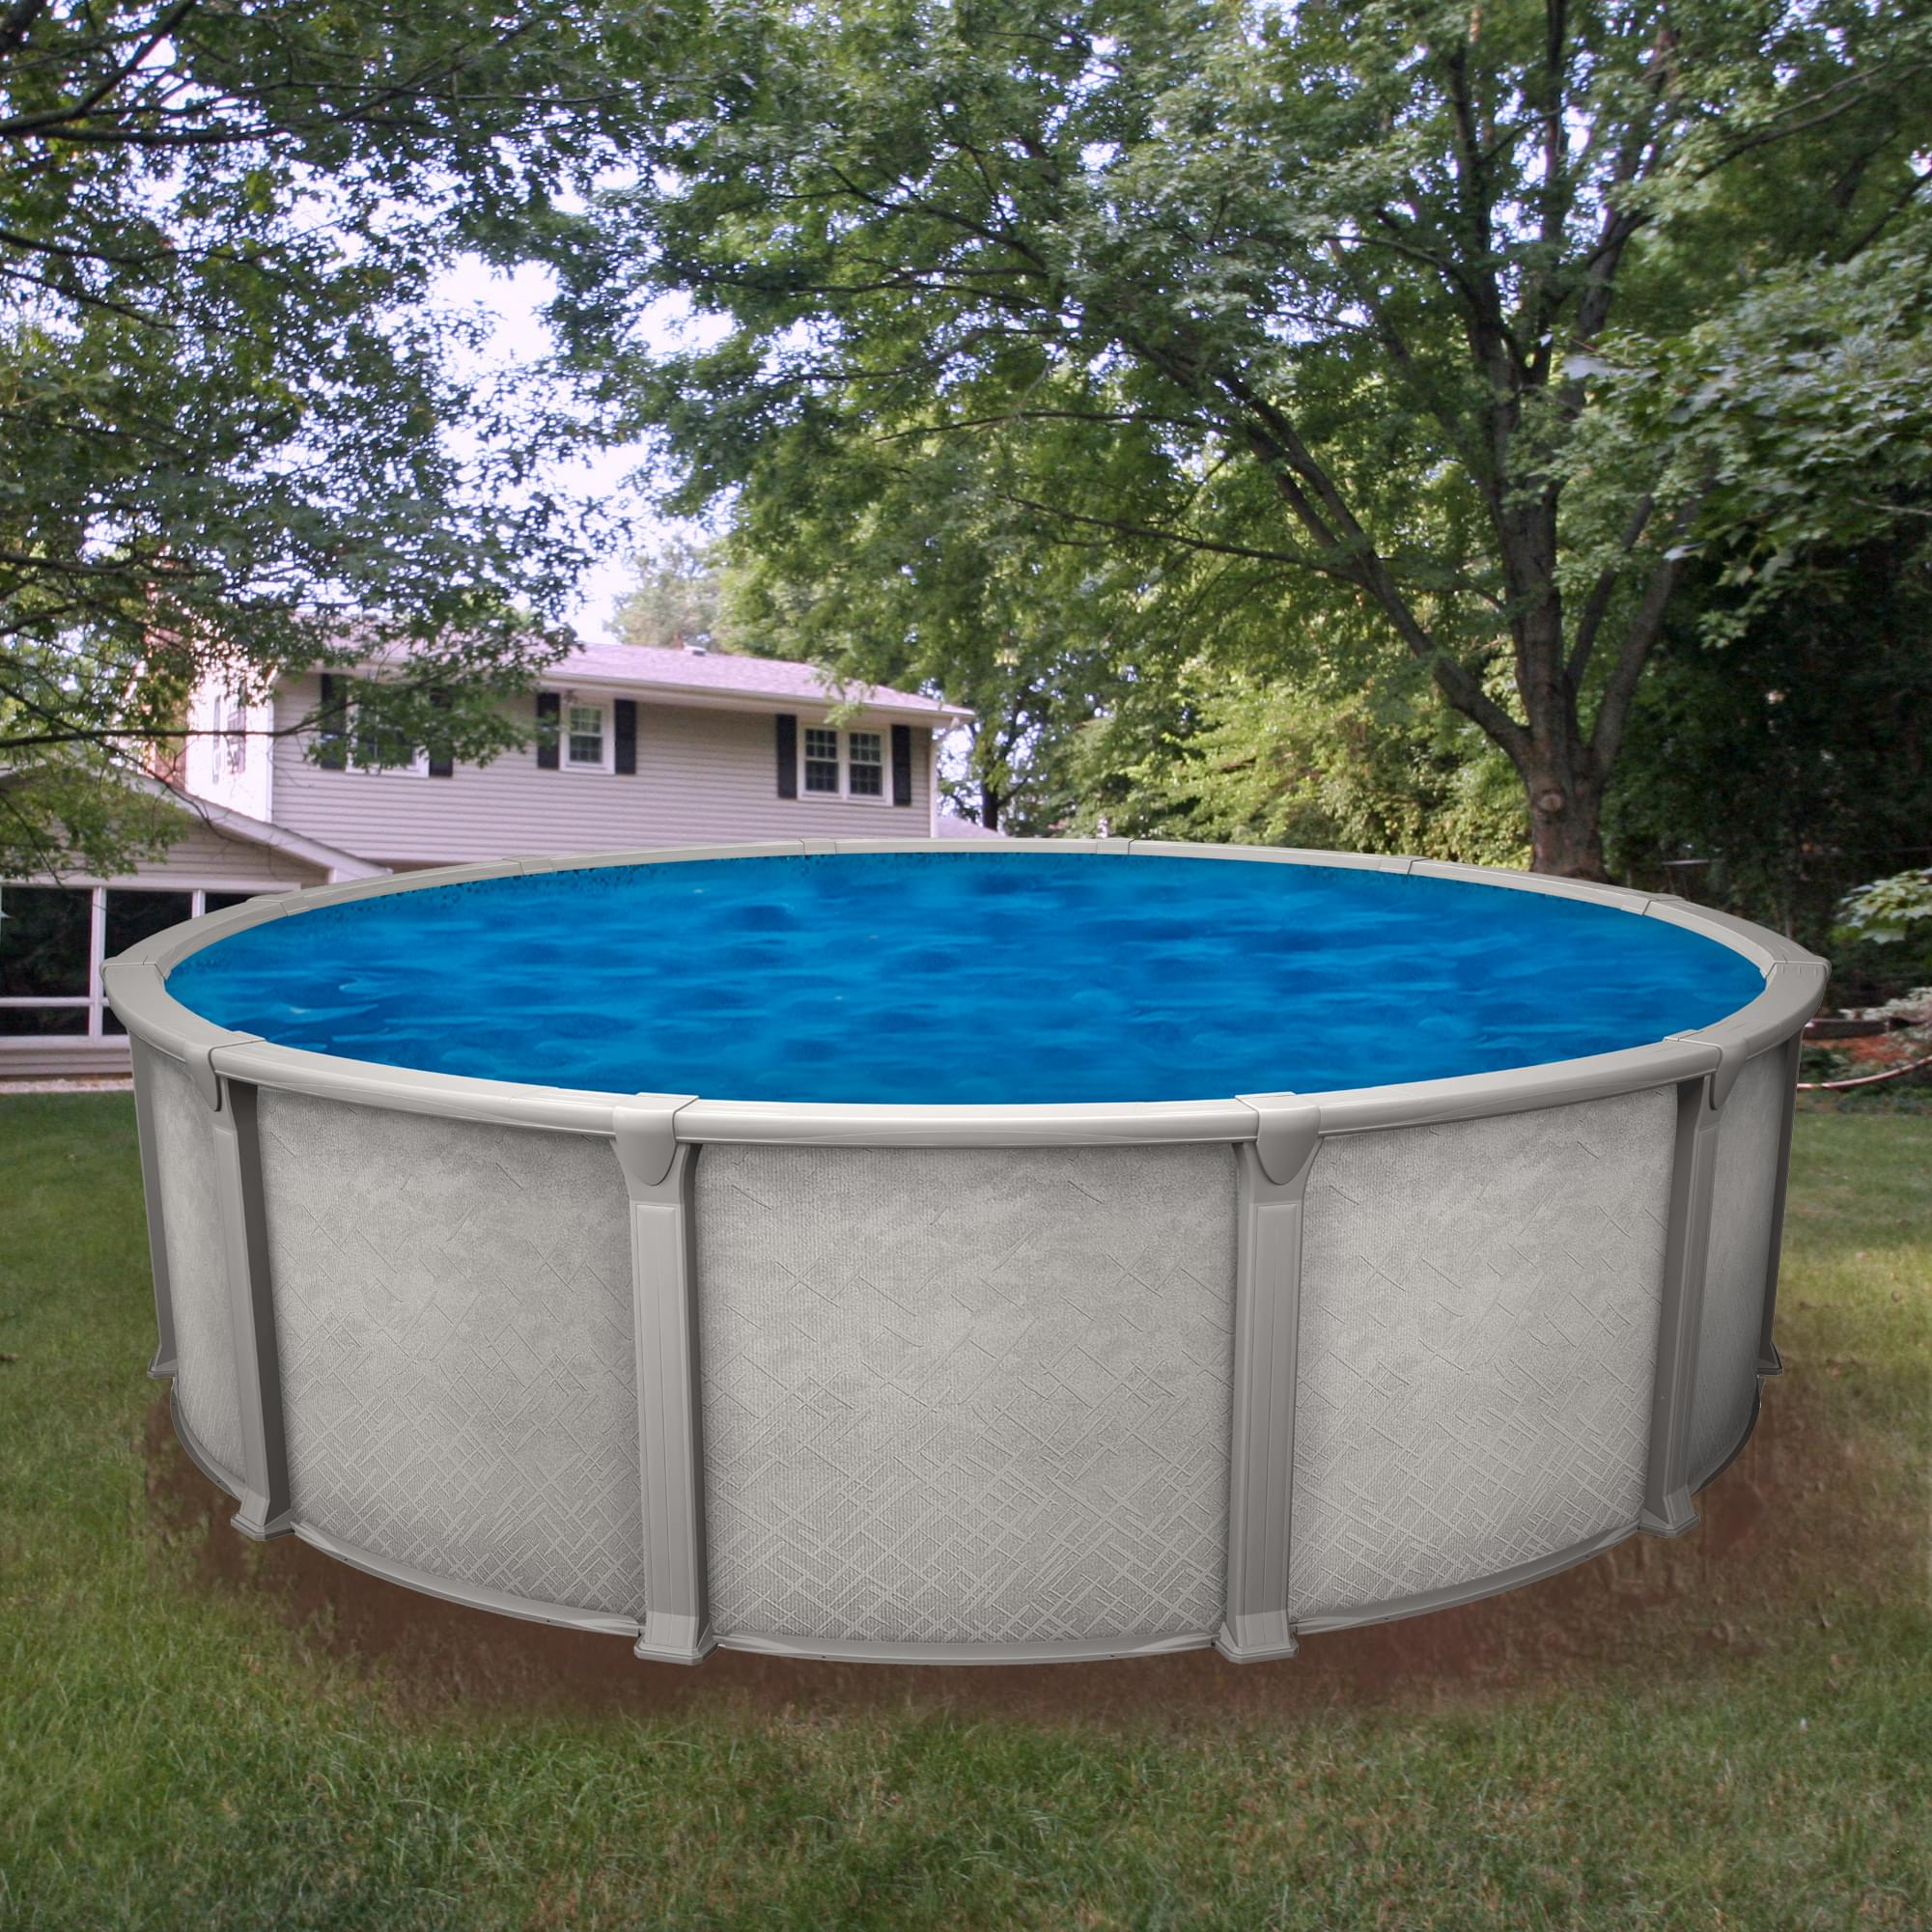 Galaxy 15 ft round above ground pool pool supplies canada for Above ground swimming pools